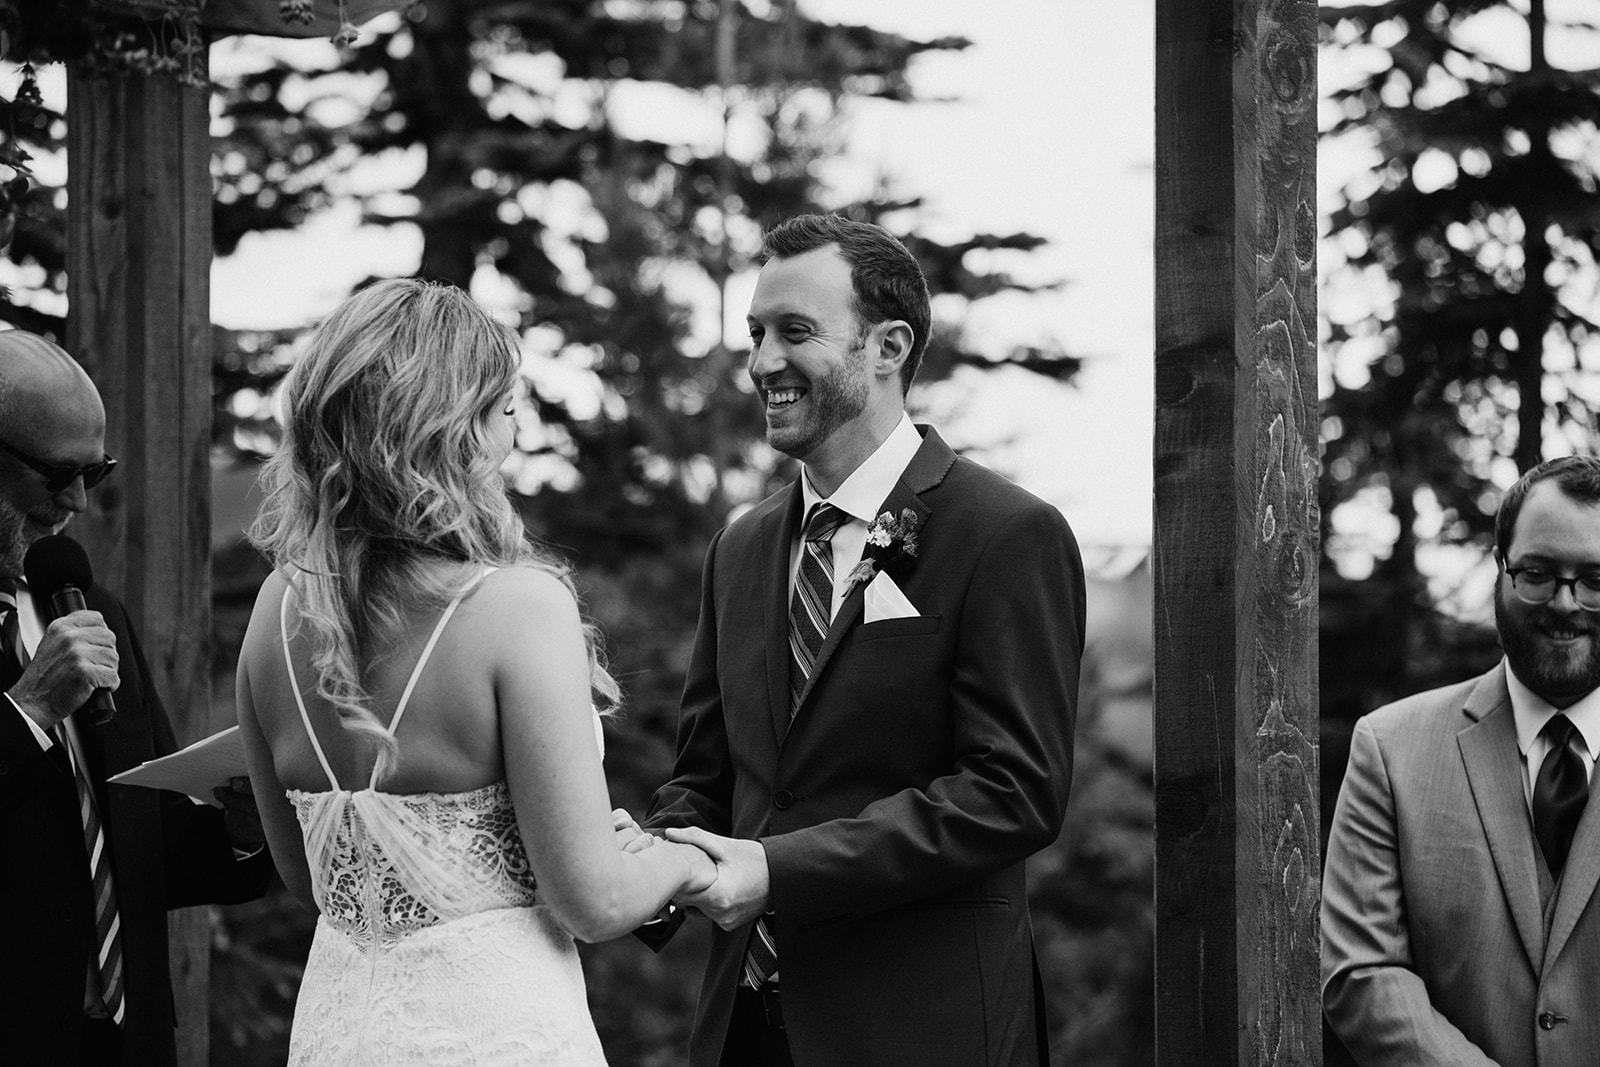 Canadian Elopement and Wedding Photographer - Unplugged Candid wedding